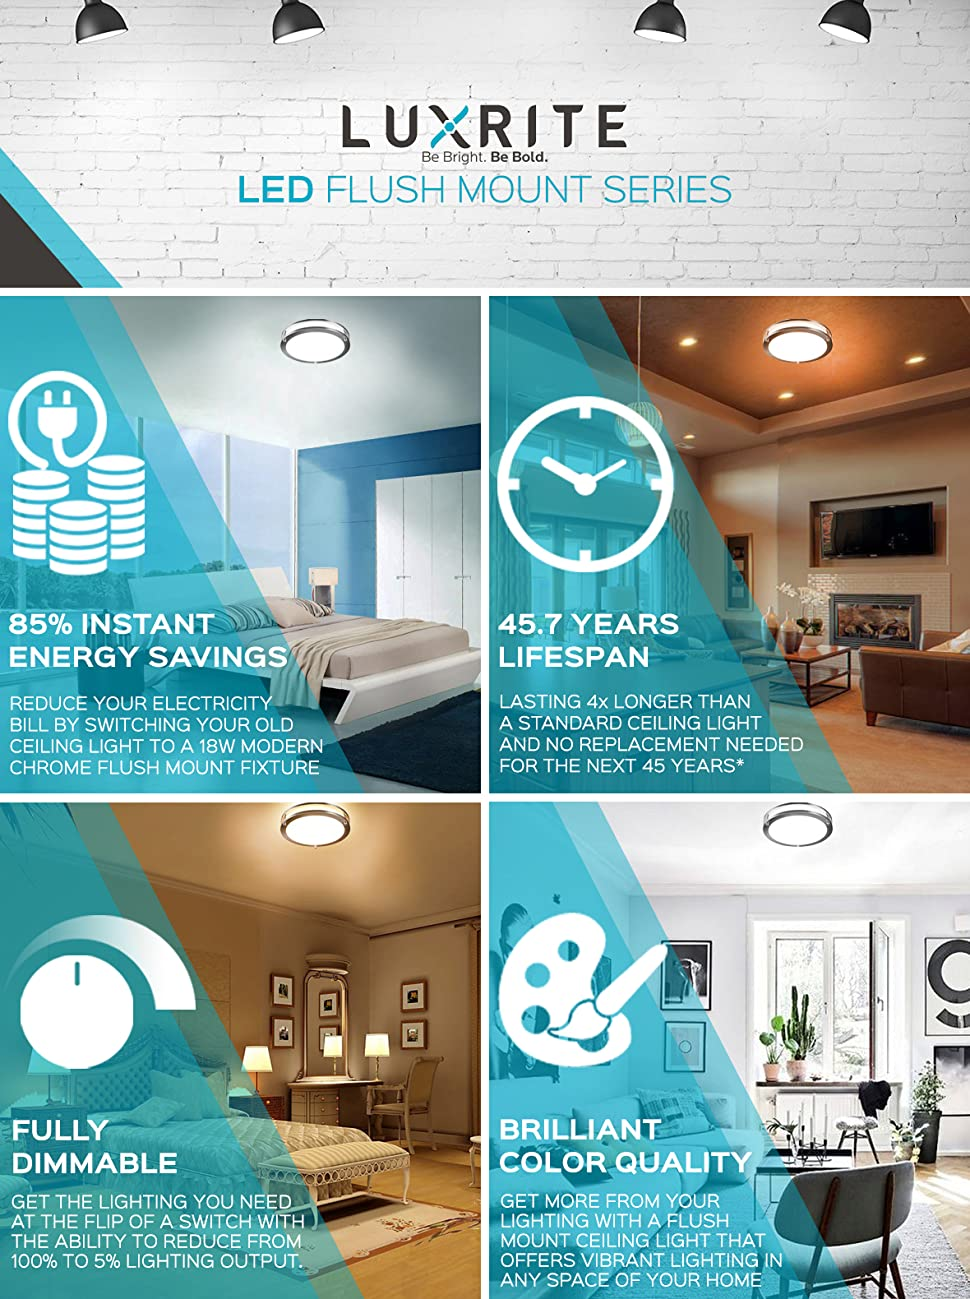 Luxrite LED Flush Mount Ceiling Light, 12 Inch, Dimmable, 4000K Cool ...